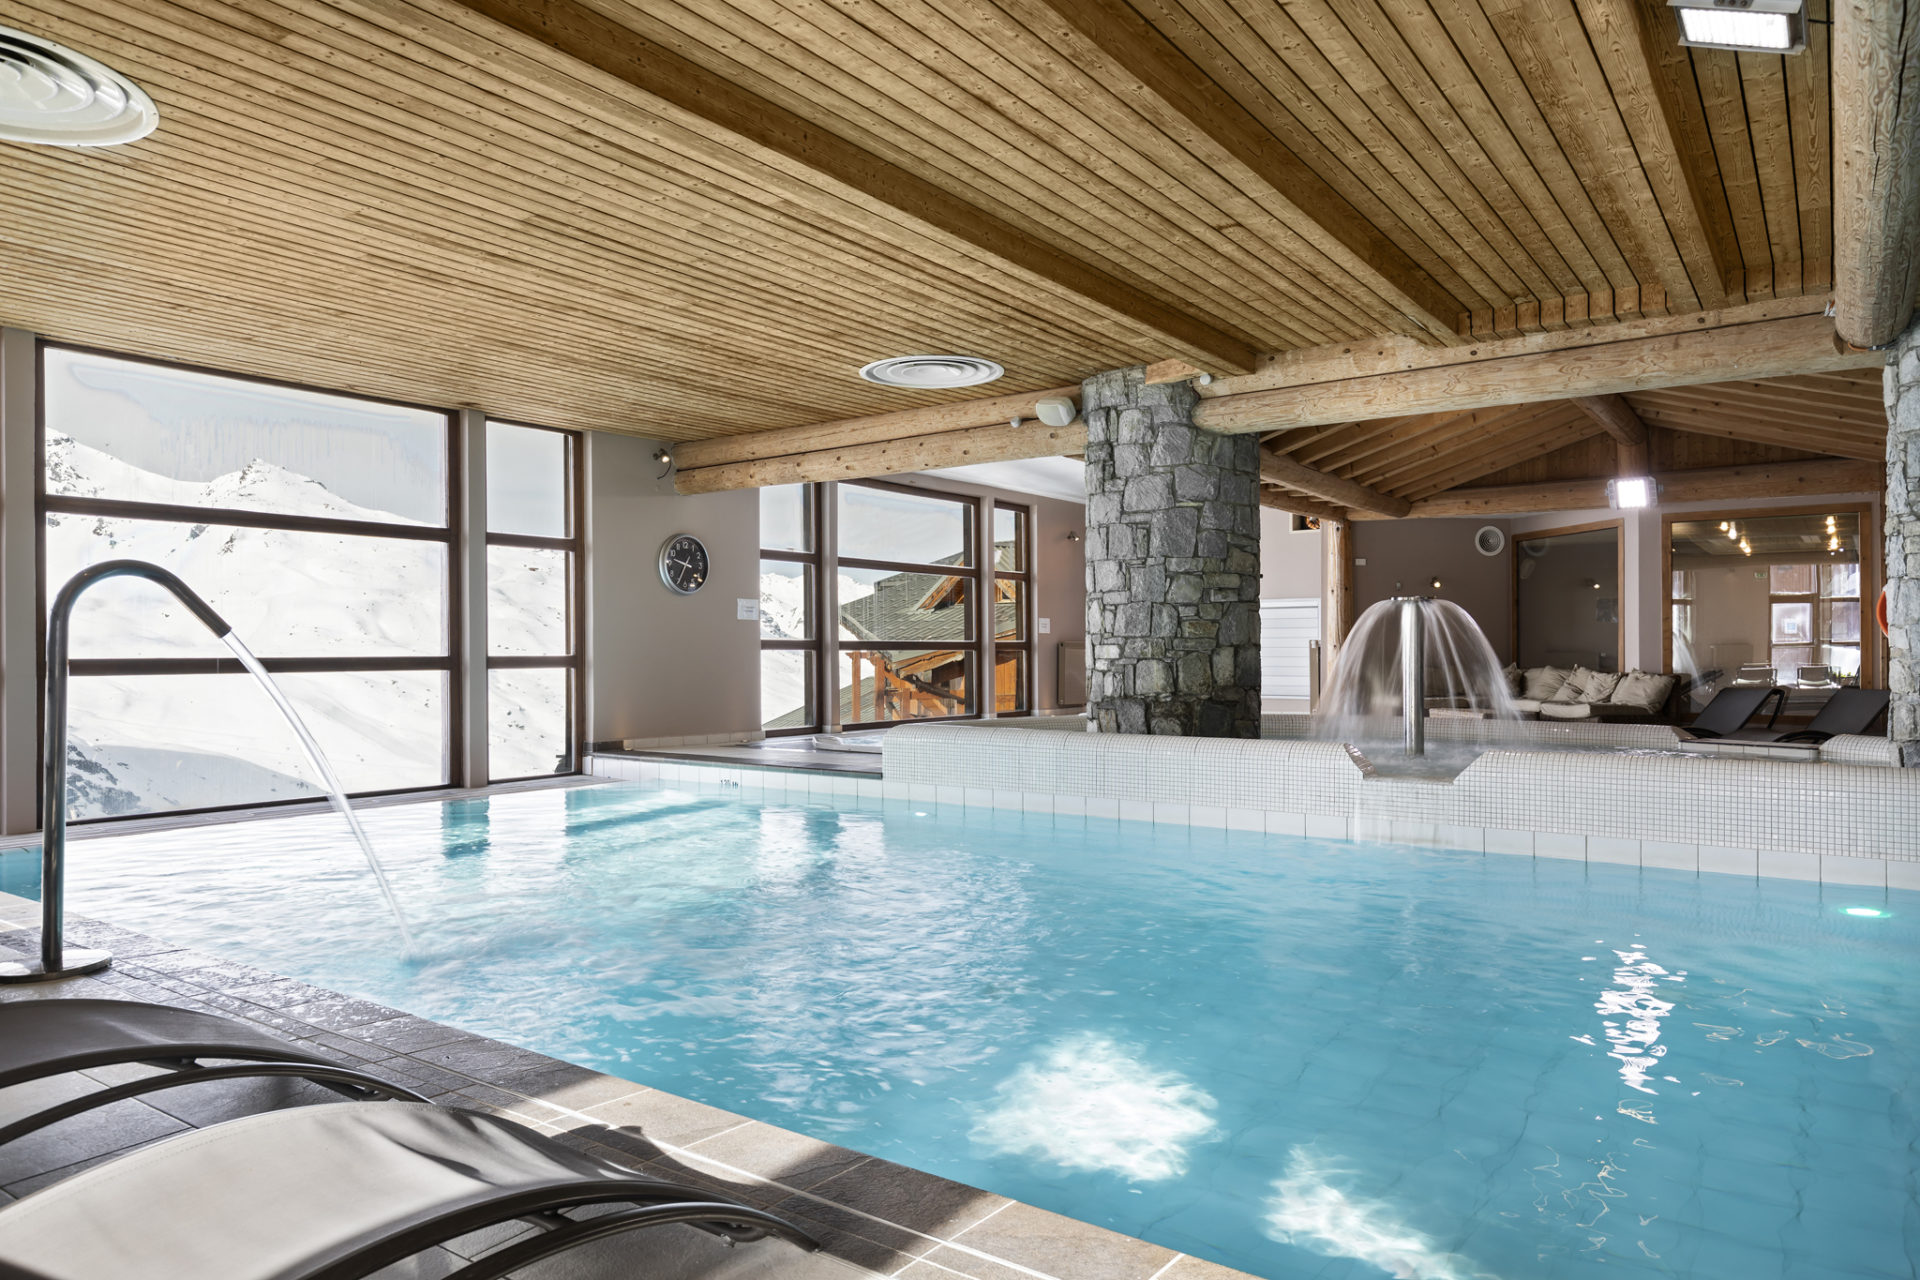 Image of indoor pool at Les Balcons de Val Thorens